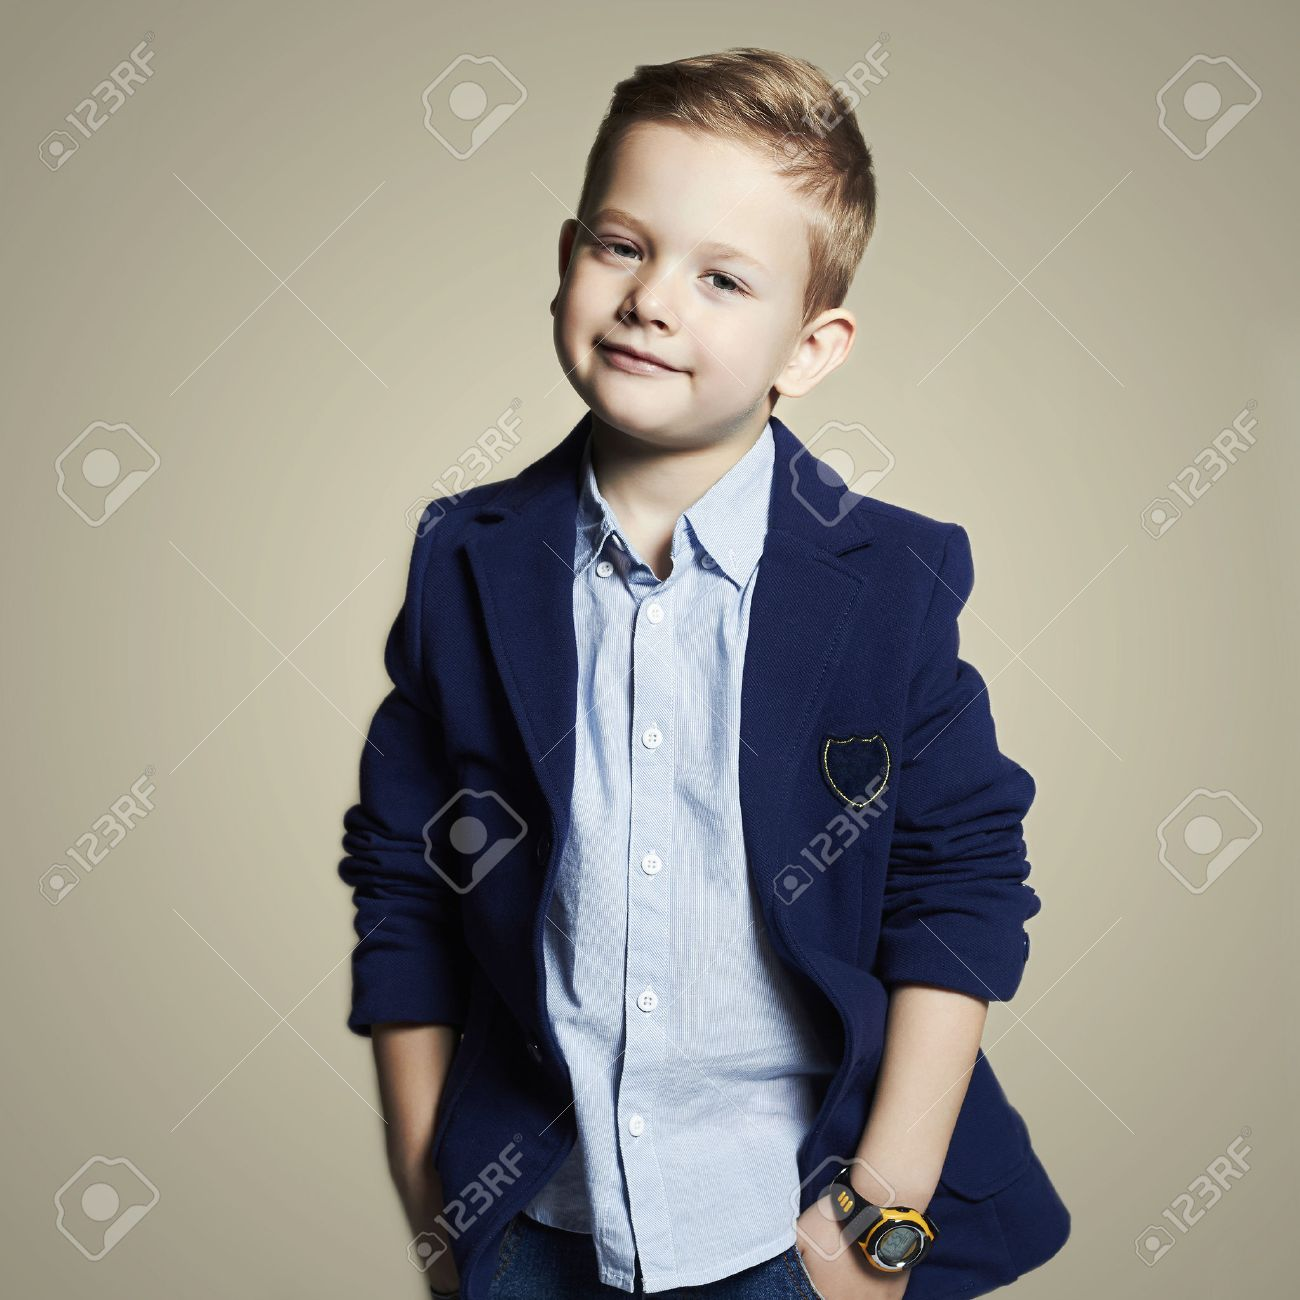 Kids Stylish boy pictures